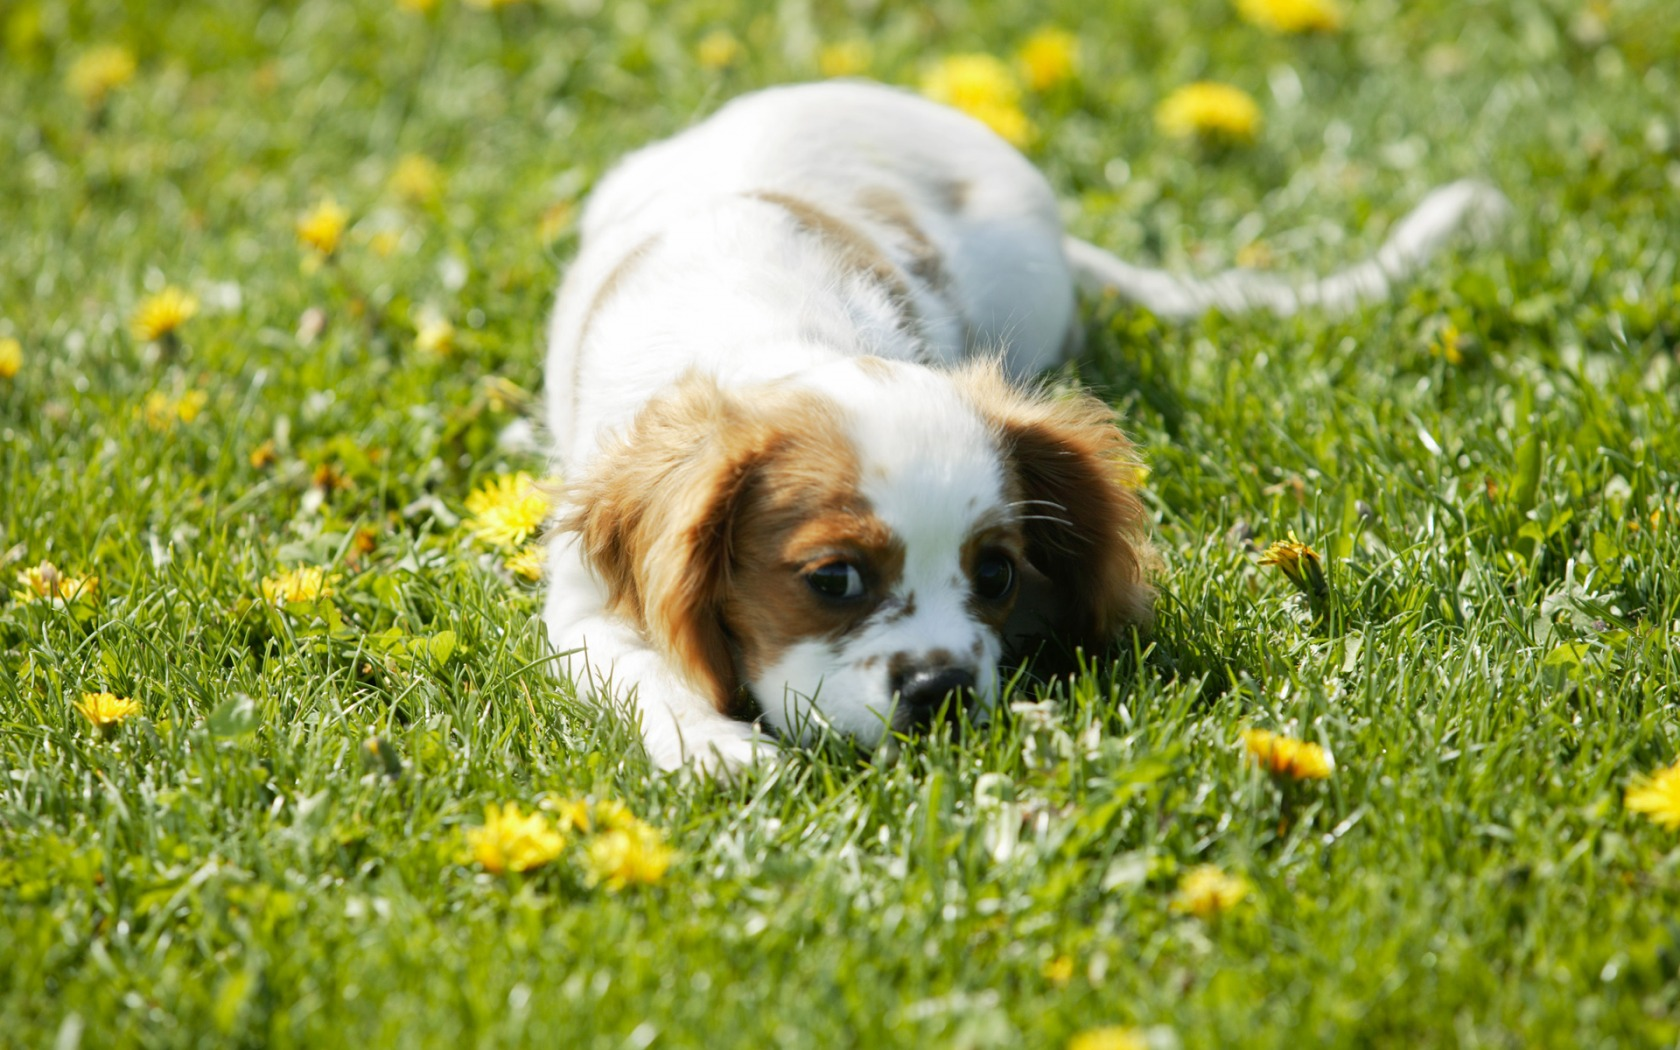 small dog wallpaper dogs animals wallpapers in jpg format for free